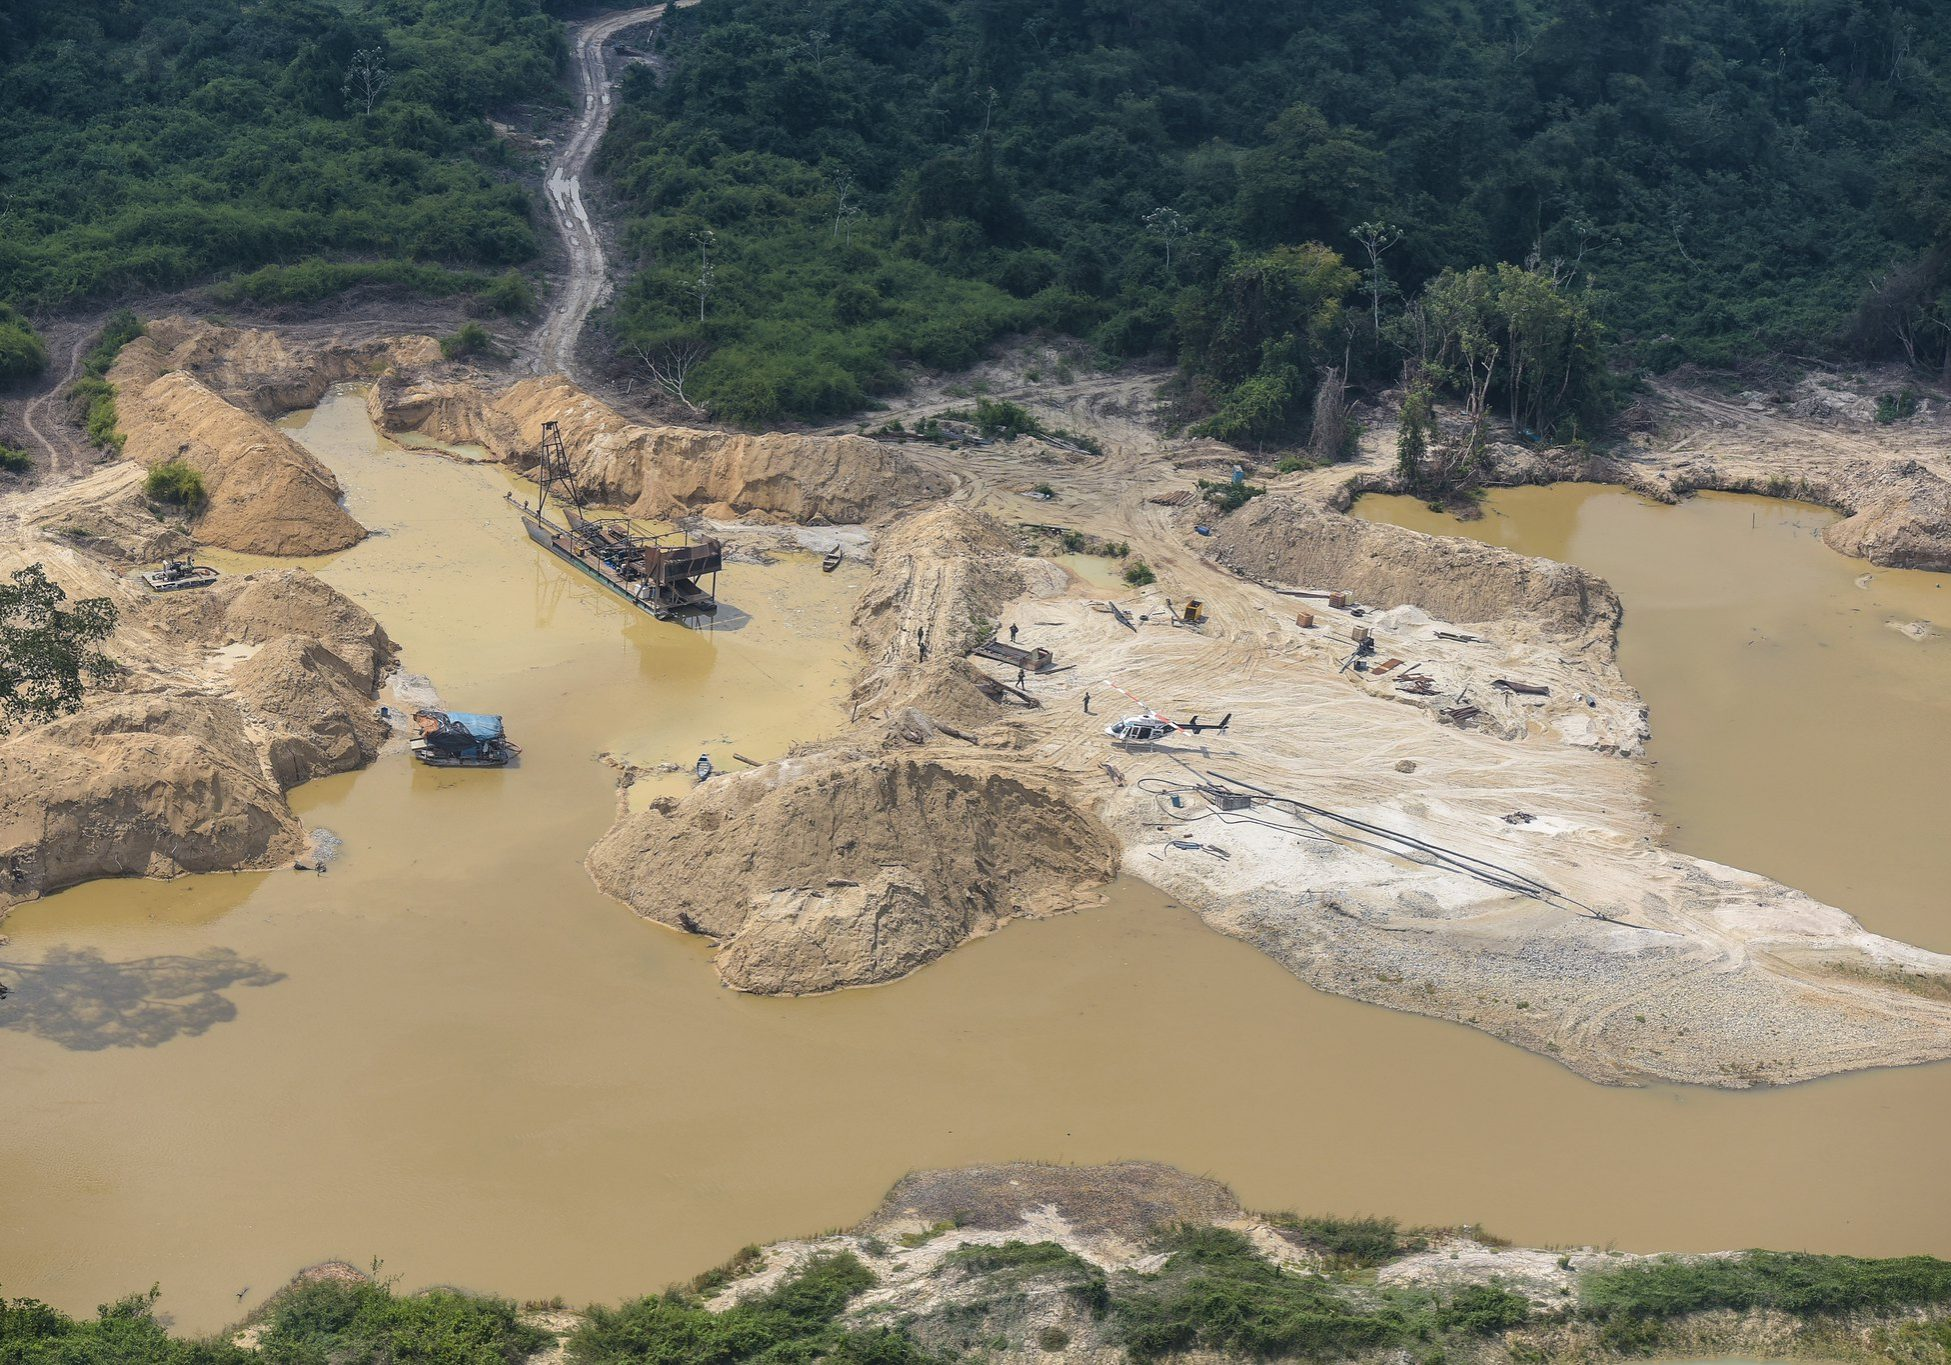 In this 2017 photo, Brazilian environmental police conduct an interdiction on an illegal gold-mining operation on Kayapó indigenous land in the Amazon rainforest. Under the current presidency of Jair Bolsonaro, industrial incursions into the Amazon are expected to increase, leading the Kayapó to make peace with traditional enemies and present a united front against further resource development. Photo credit: Felipe Werneck/Ibama